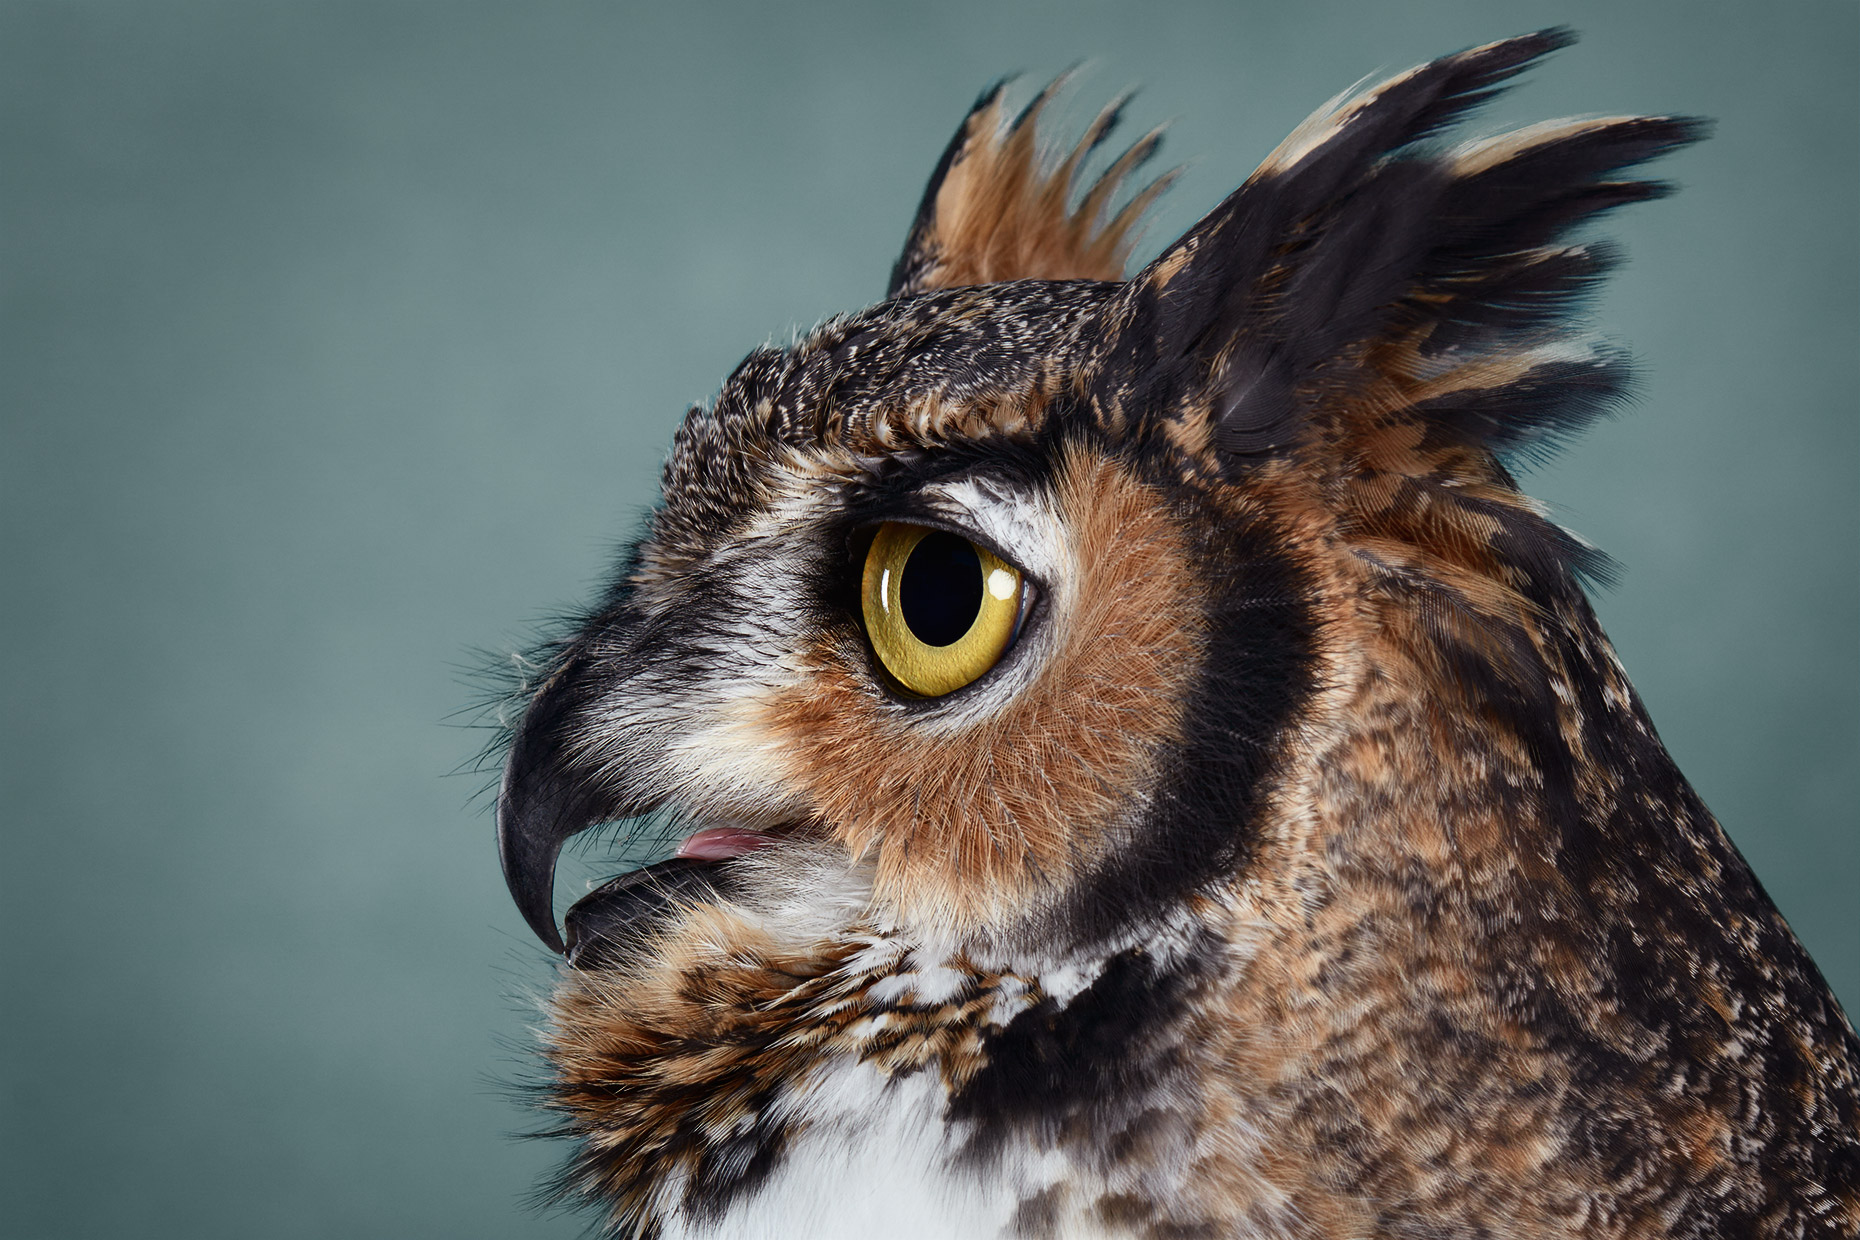 Profile of a Great Horned Owl